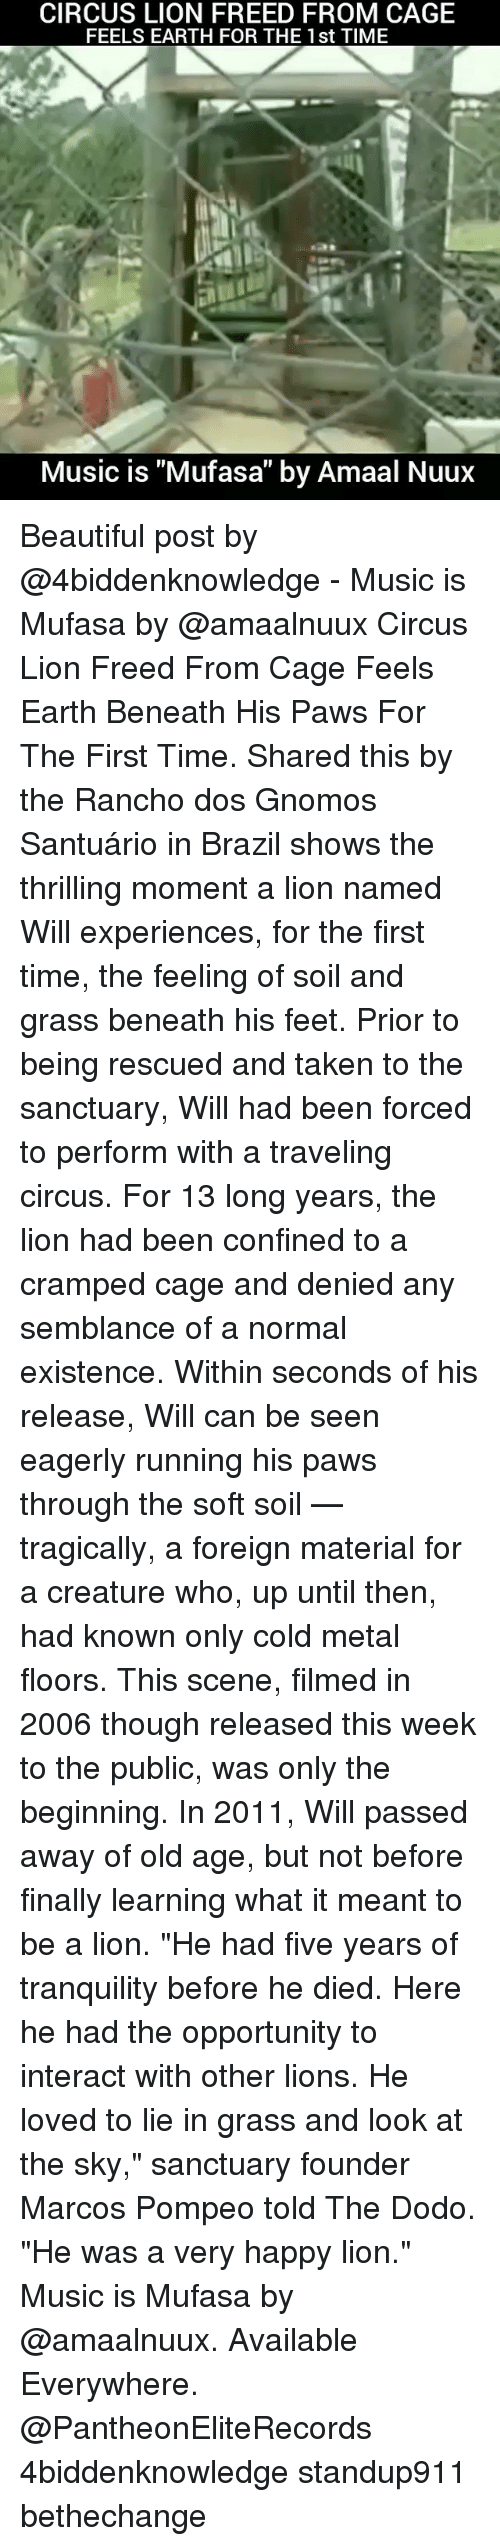 """Grasse: CIRCUS LION FREED FROM CAGE  FEELS EARTH FOR THE 1st TIME  Music is """"Mufasa"""" by Amaal Nuux Beautiful post by @4biddenknowledge - Music is Mufasa by @amaalnuux Circus Lion Freed From Cage Feels Earth Beneath His Paws For The First Time. Shared this by the Rancho dos Gnomos Santuário in Brazil shows the thrilling moment a lion named Will experiences, for the first time, the feeling of soil and grass beneath his feet. Prior to being rescued and taken to the sanctuary, Will had been forced to perform with a traveling circus. For 13 long years, the lion had been confined to a cramped cage and denied any semblance of a normal existence. Within seconds of his release, Will can be seen eagerly running his paws through the soft soil — tragically, a foreign material for a creature who, up until then, had known only cold metal floors. This scene, filmed in 2006 though released this week to the public, was only the beginning. In 2011, Will passed away of old age, but not before finally learning what it meant to be a lion. """"He had five years of tranquility before he died. Here he had the opportunity to interact with other lions. He loved to lie in grass and look at the sky,"""" sanctuary founder Marcos Pompeo told The Dodo. """"He was a very happy lion."""" Music is Mufasa by @amaalnuux. Available Everywhere. @PantheonEliteRecords 4biddenknowledge standup911 bethechange"""